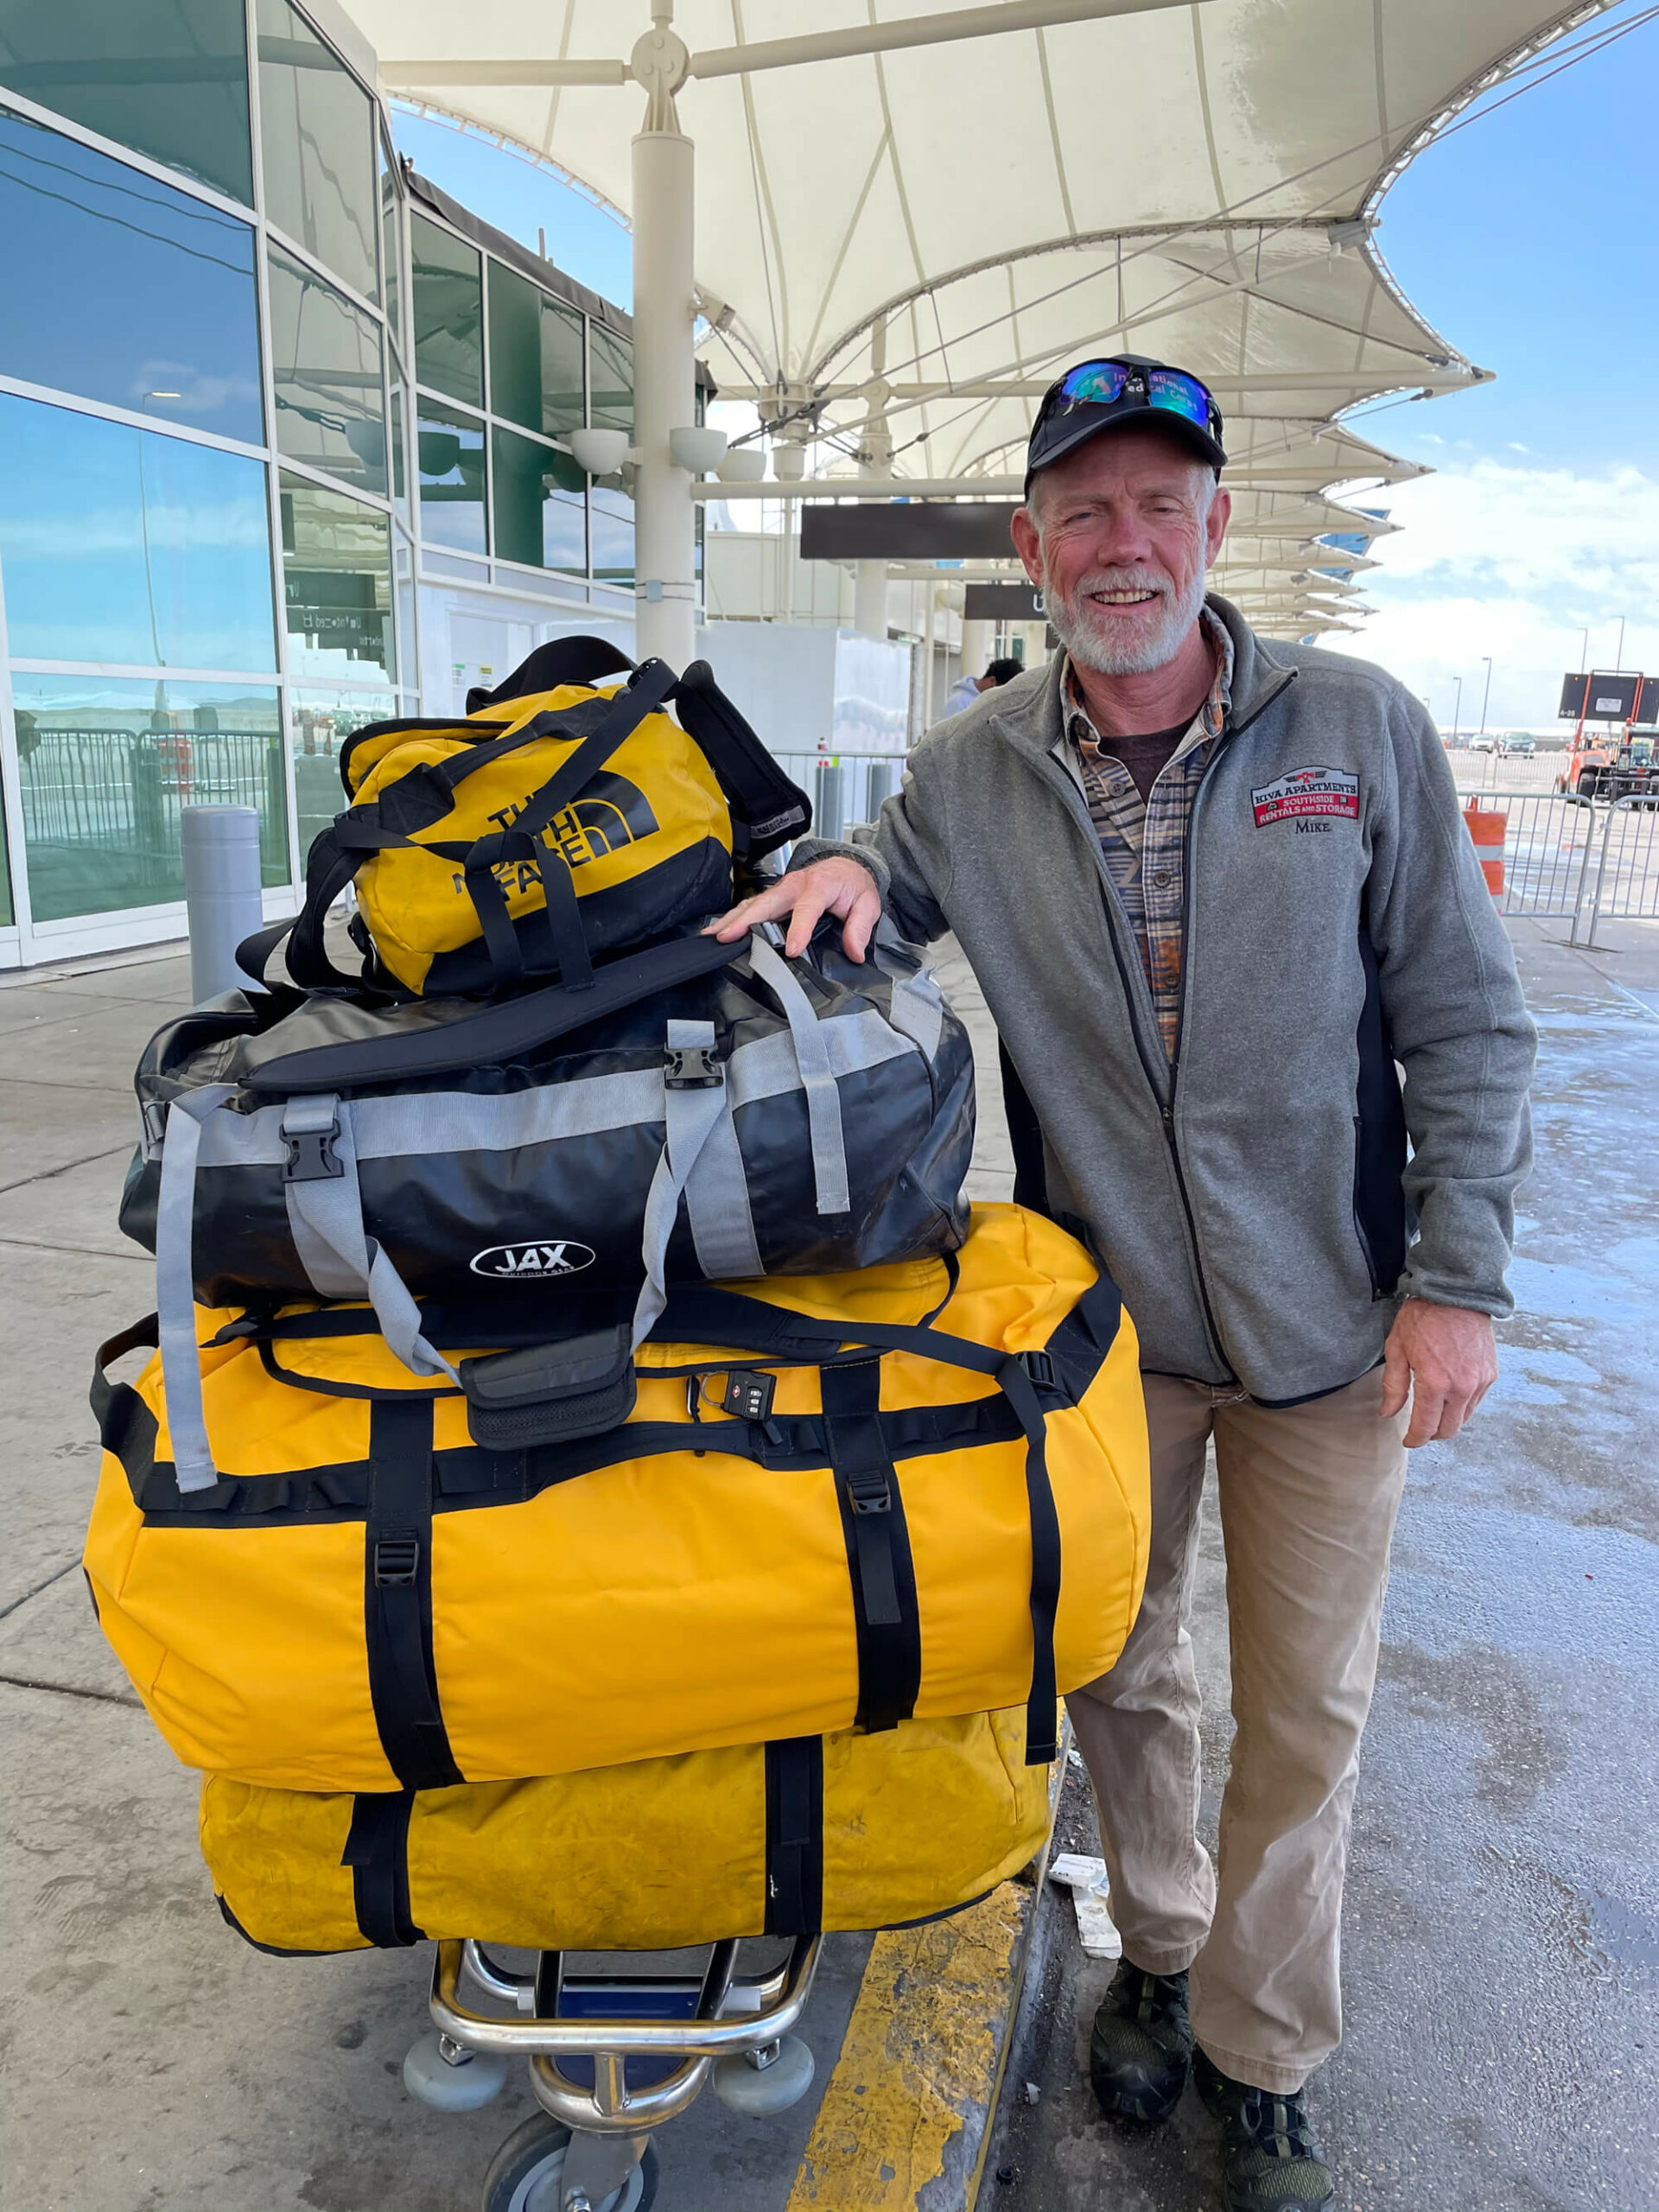 Dr. Michael Paterson has arrived in Nepal and started the final steps of training for his climb of a lifetime.